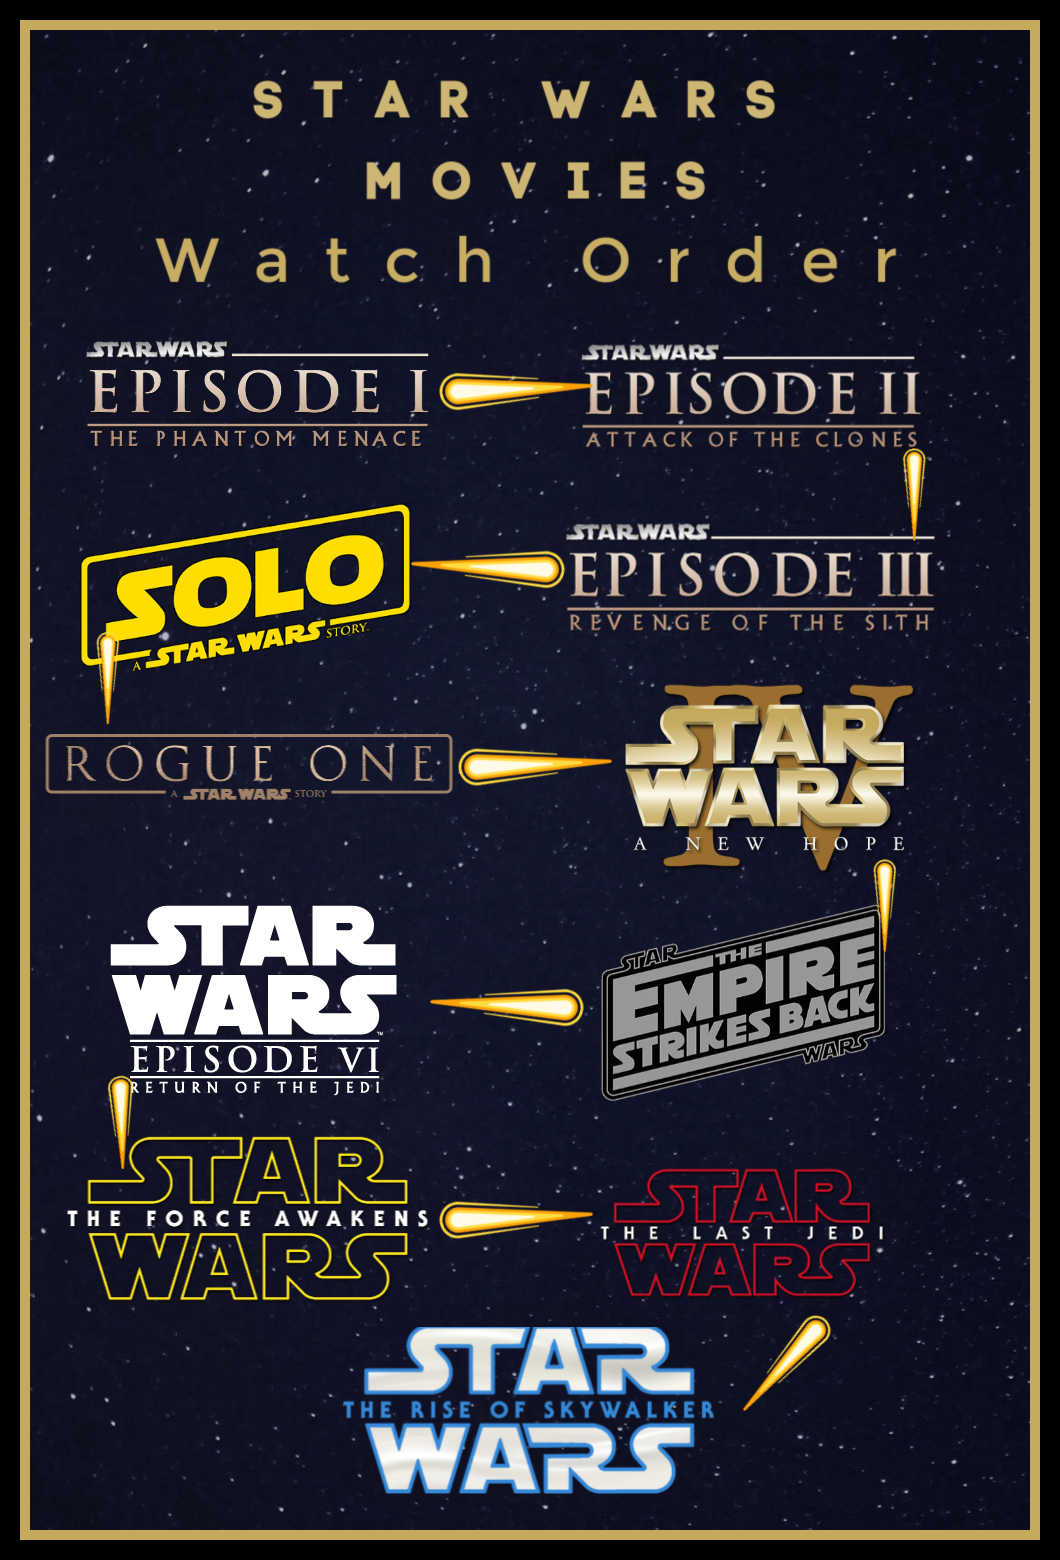 The Star Wars Films In Order, which order should I watch the Star Wars Movies?